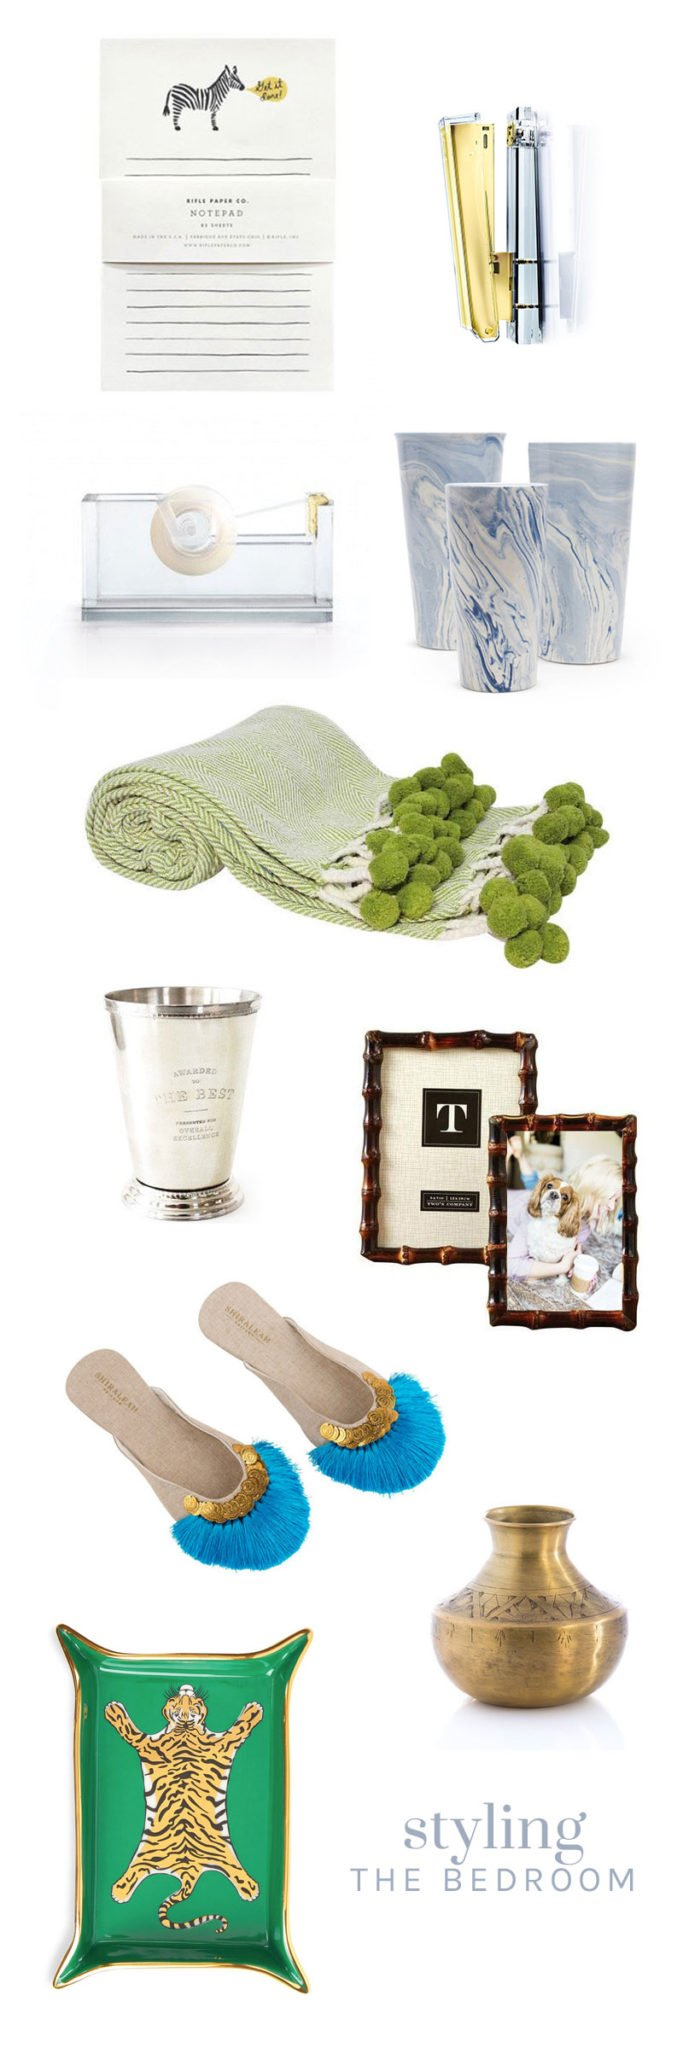 Home decor and accessories from Waiting on Martha on Thou Swell @thouswellblog